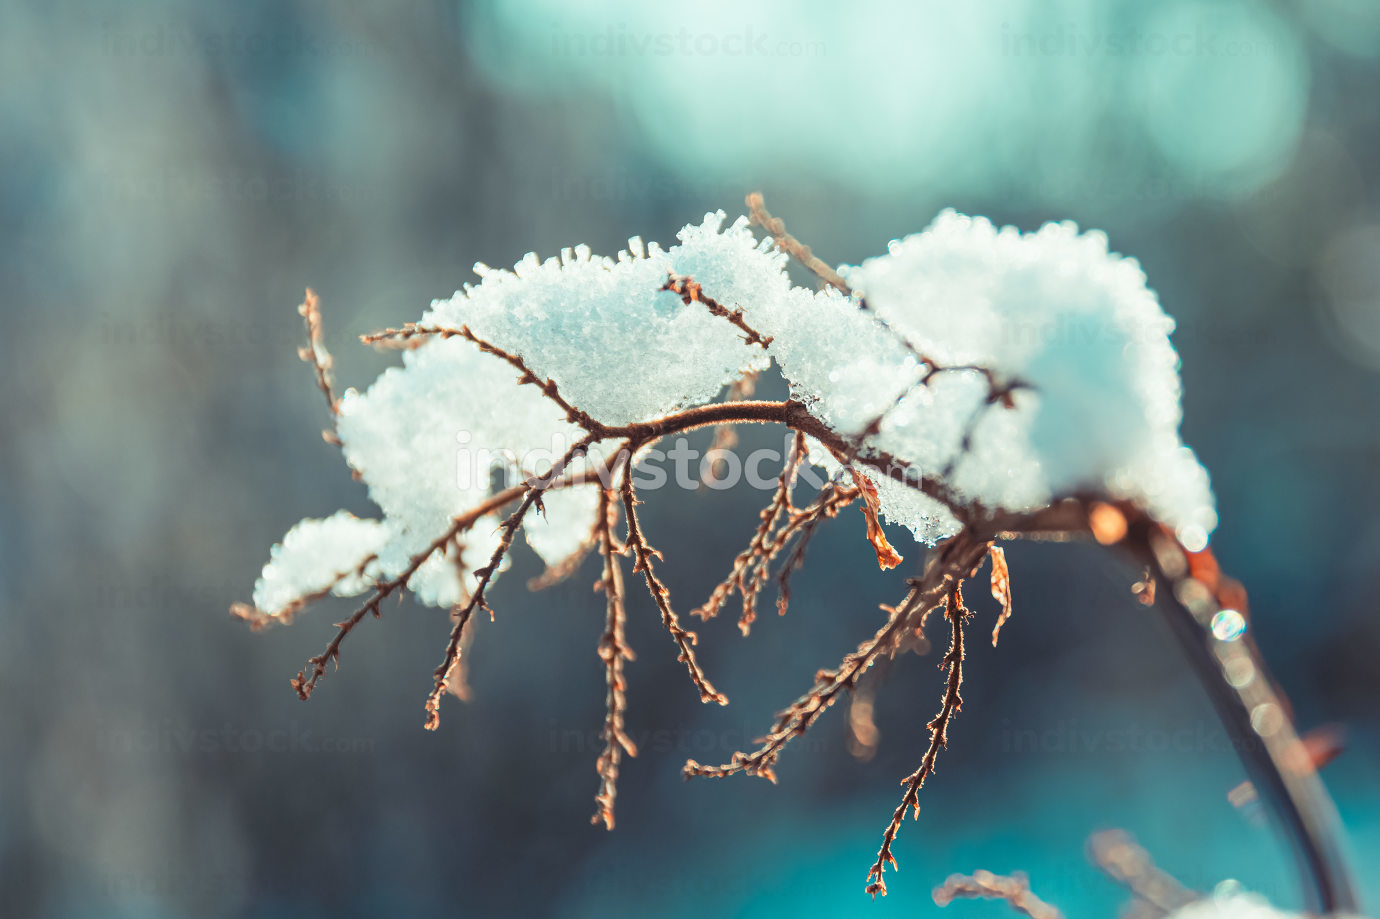 ice and snow on branches in winter